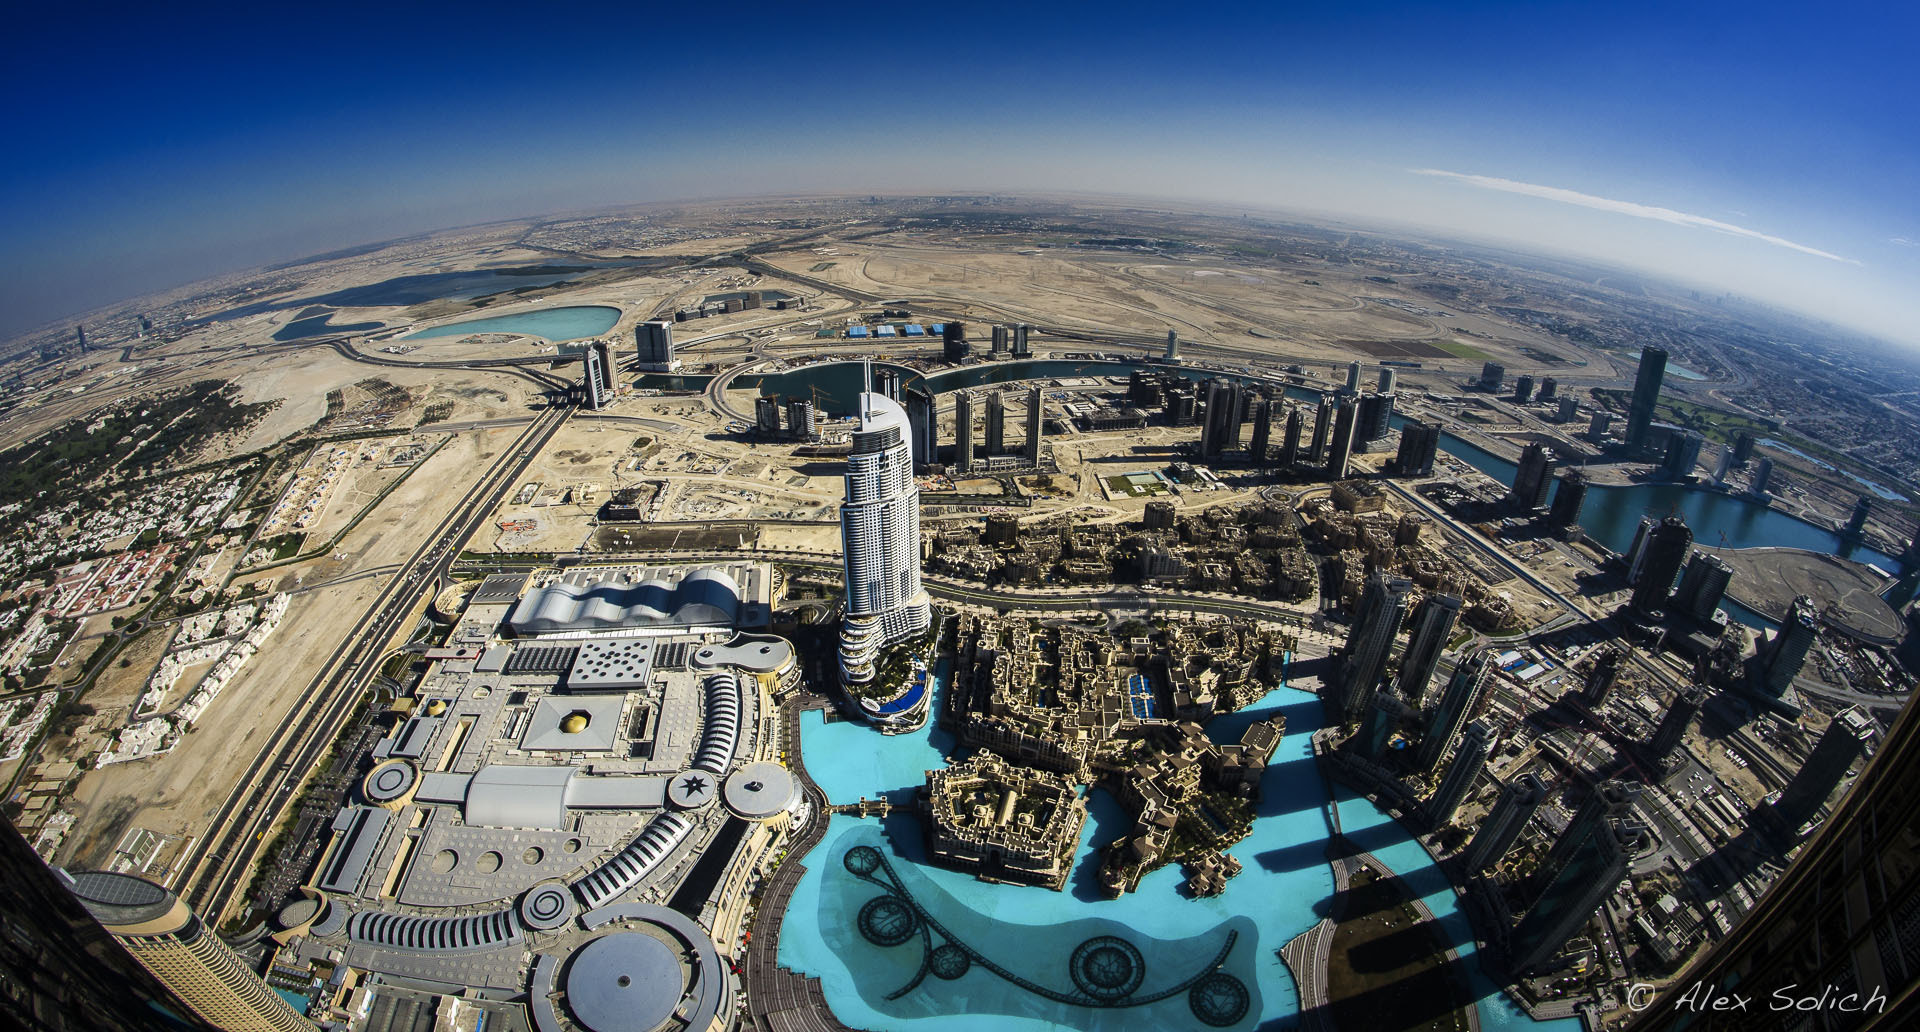 Photograph Above Dubai by Alex Solich on 500px